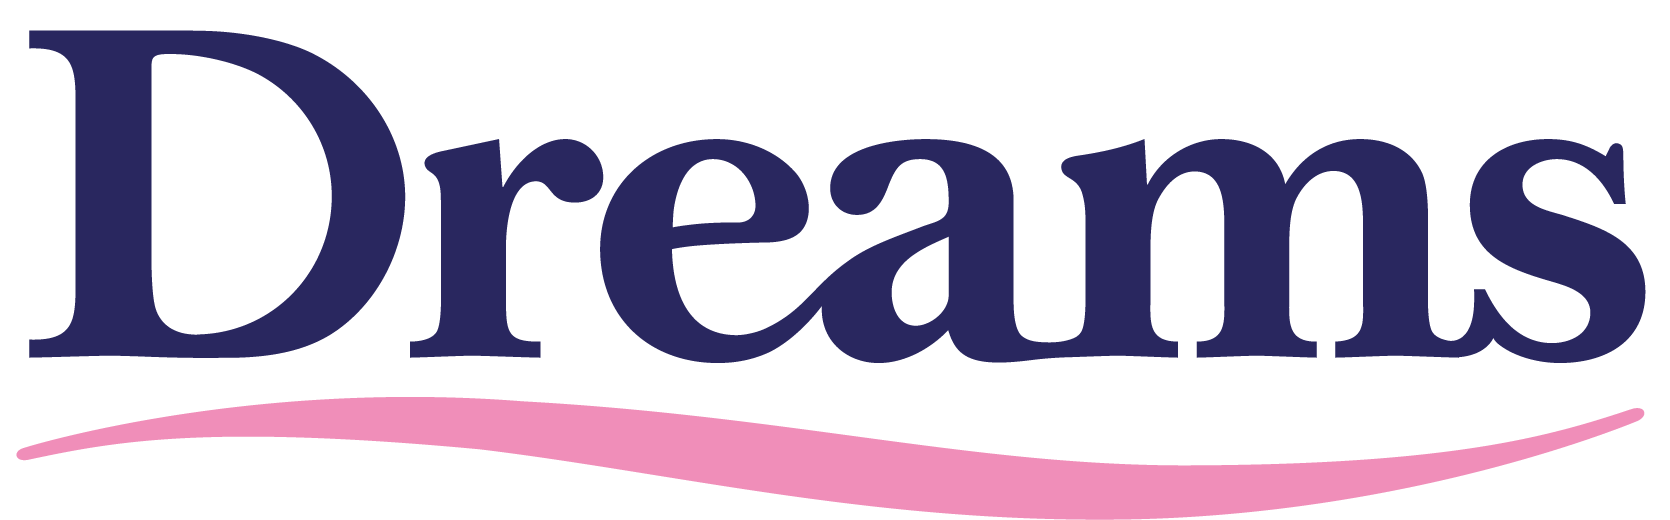 trusted-by-dreams-logo